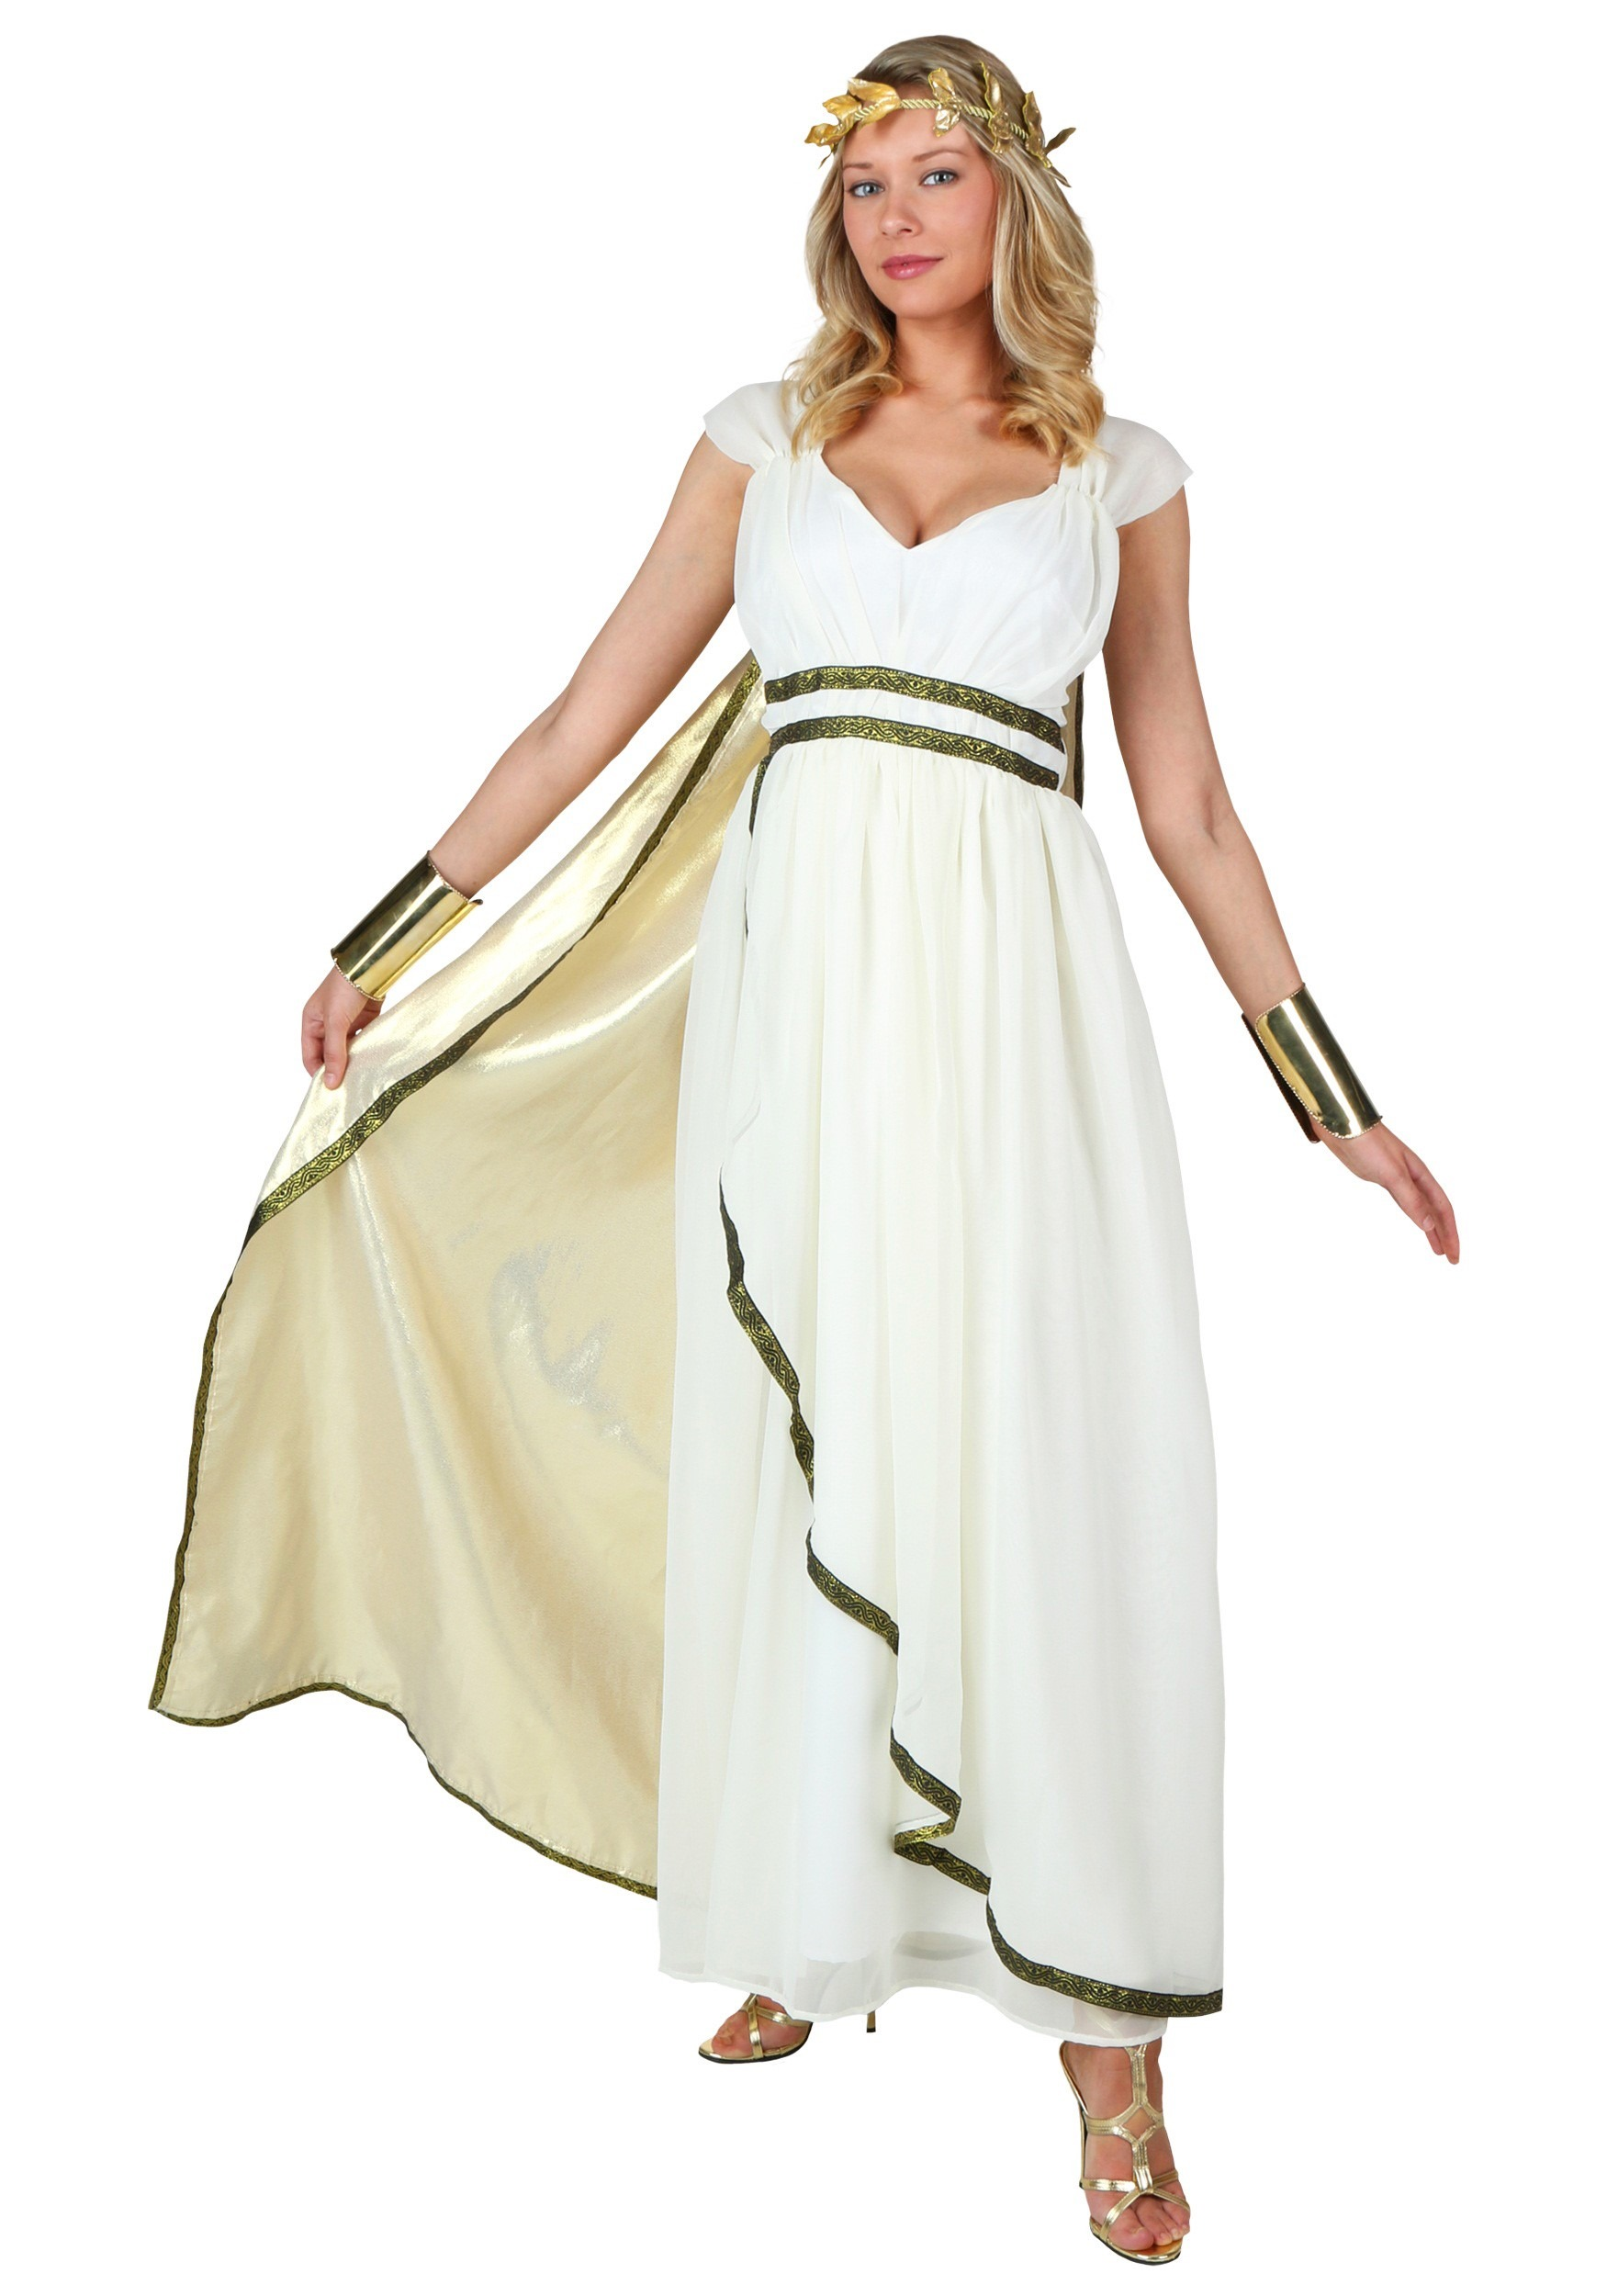 Black greek goddesses dress plus sizes